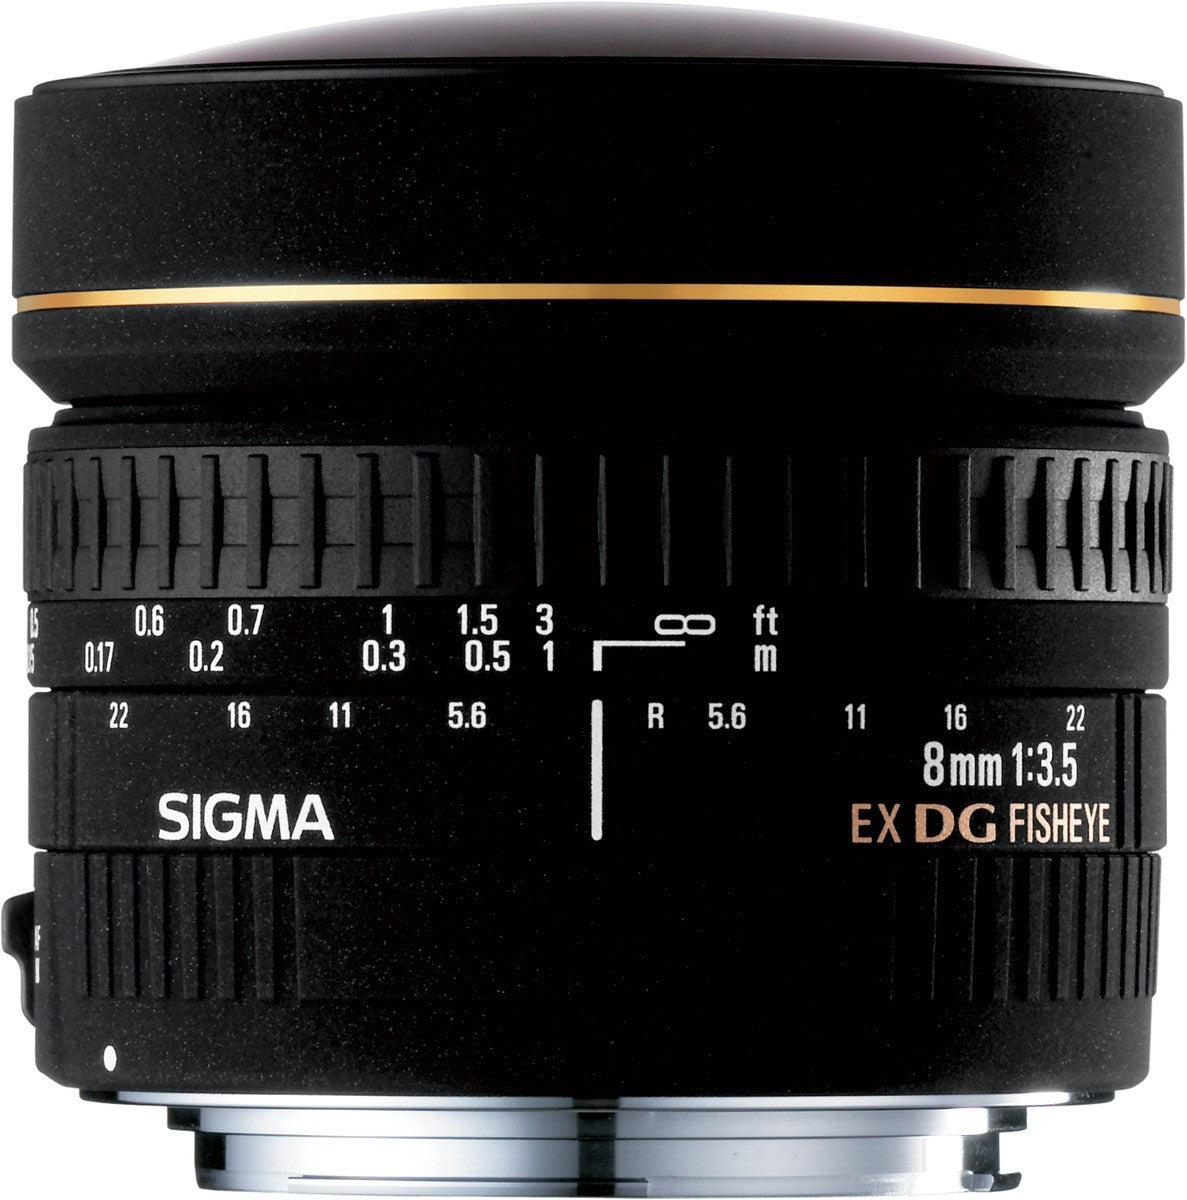 Sigma 8mm F3.5 EX DG Circular Fish-Eye (Canon) - Photo-Video - Sigma - Helix Camera